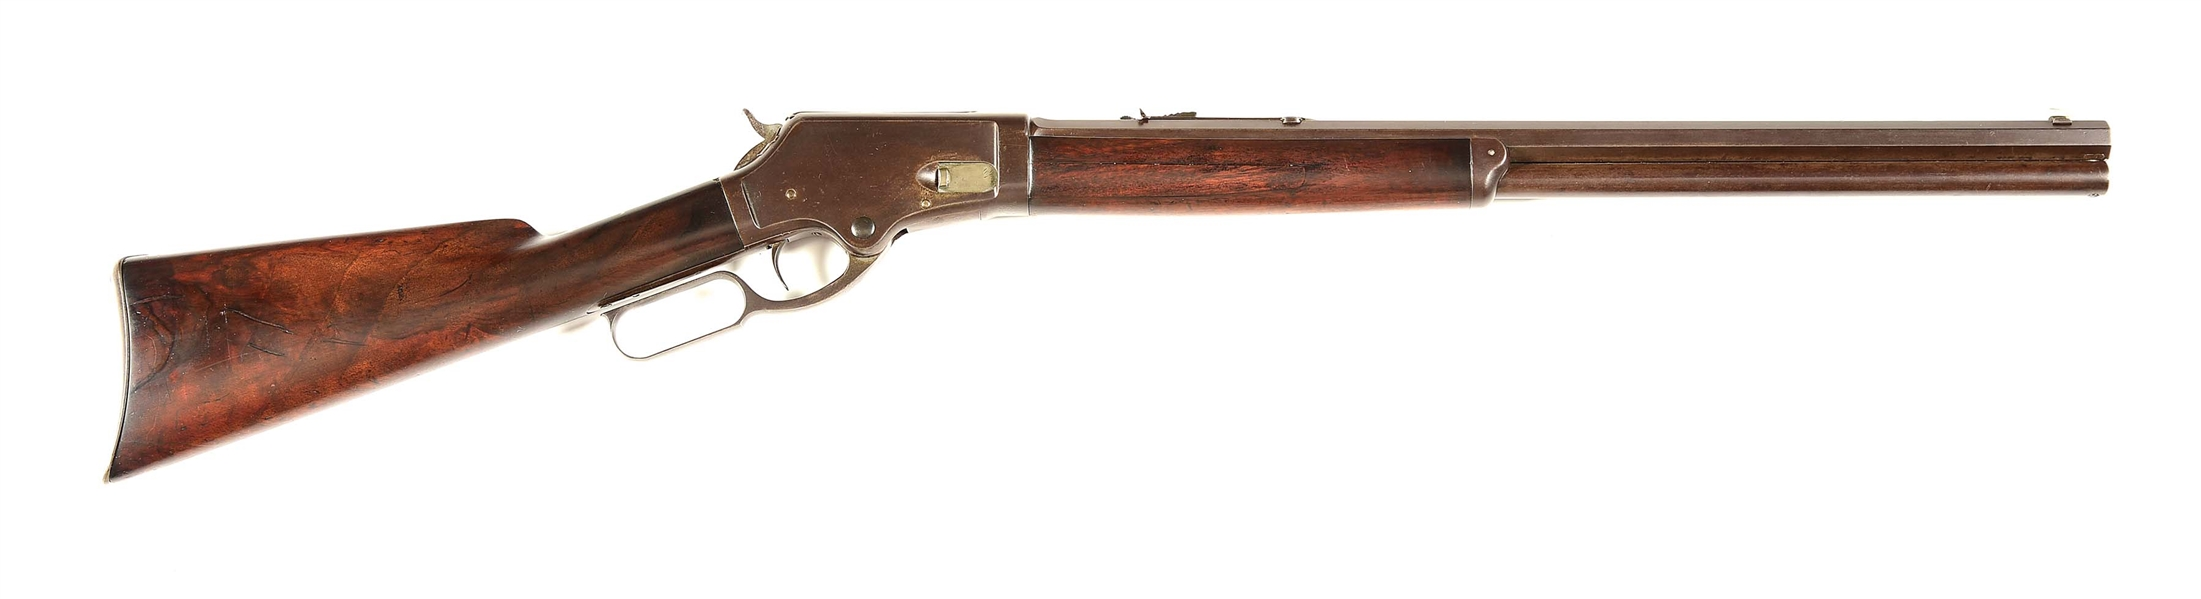 "(A) MARLIN 1881 ""SMOOTHBORE"" LEVER-ACTION RIFLE."